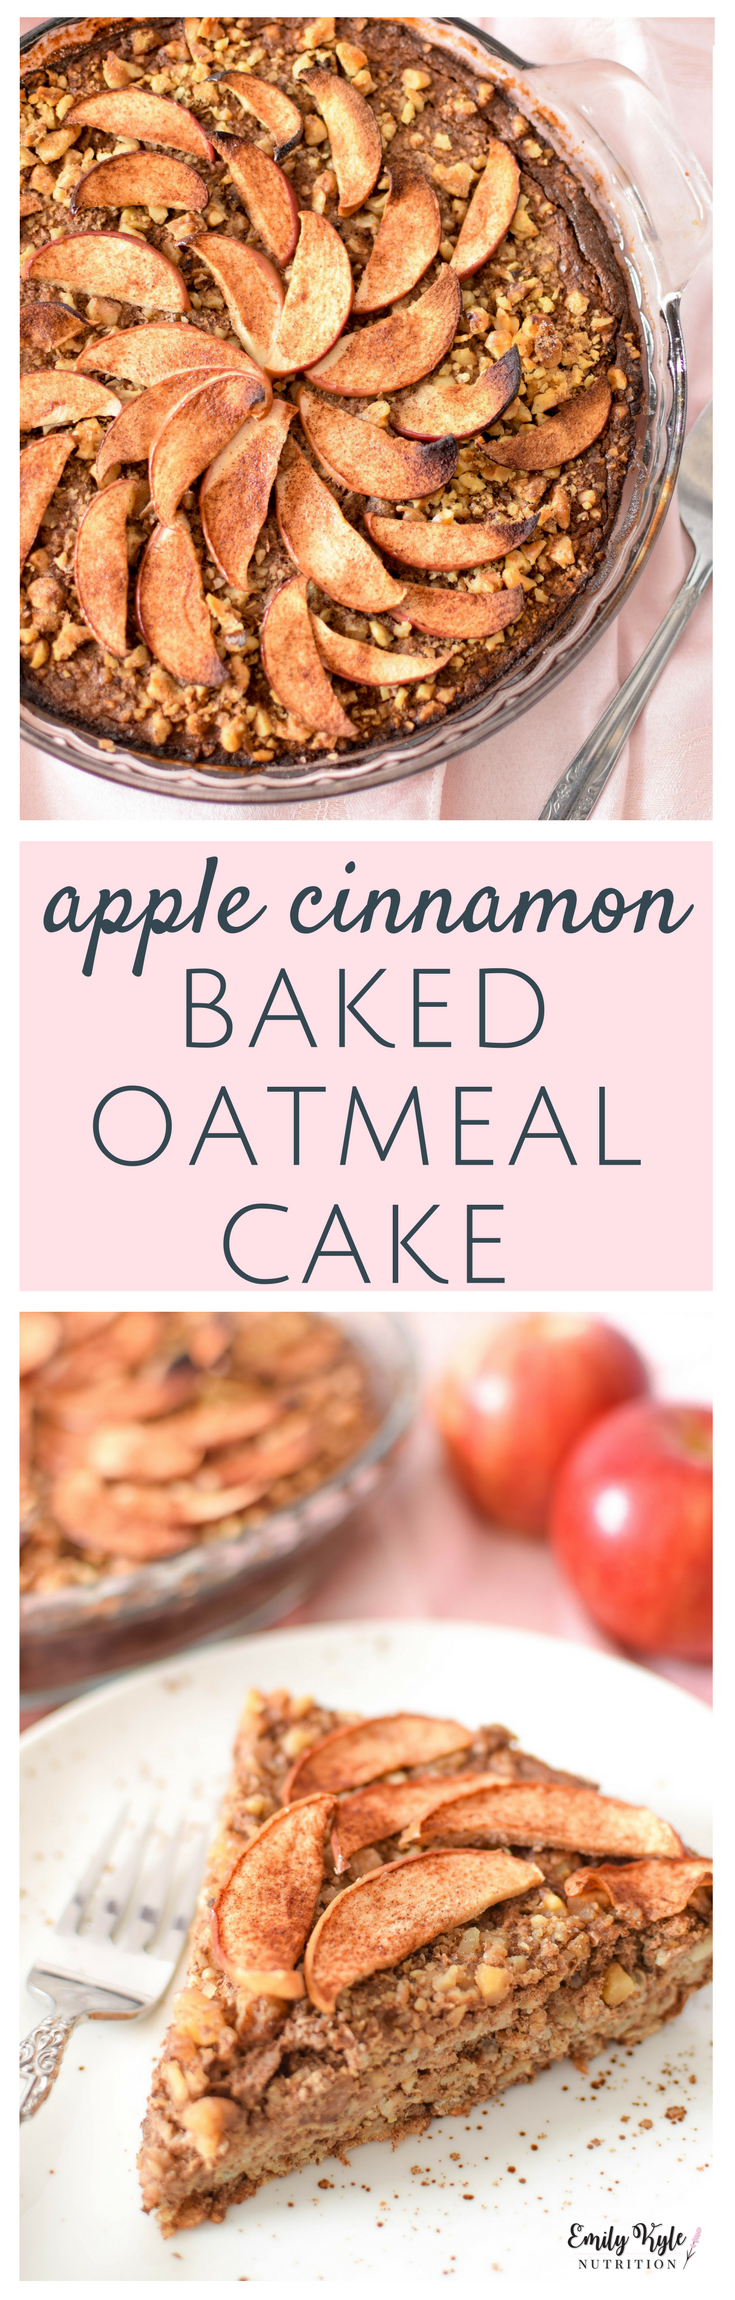 Spice up your breakfast routine with this simple. whole-food, nutrient dense Apple & Cinnamon Baked Oatmeal Cake! via @EmKyleNutrition